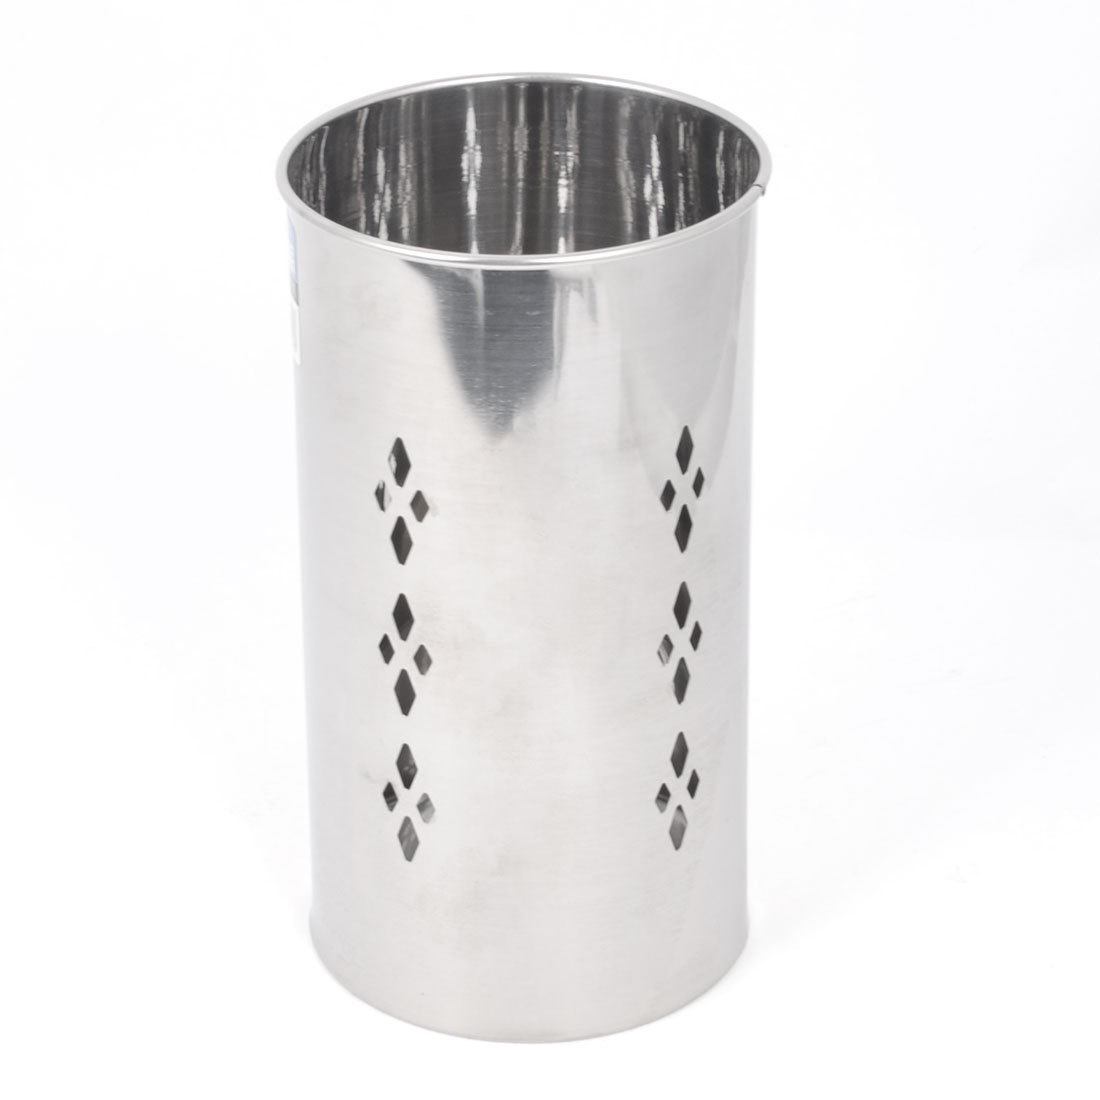 Home Rhombus Hollow Out Hole Stainless Steel Spoon Chopsticks Holder Box